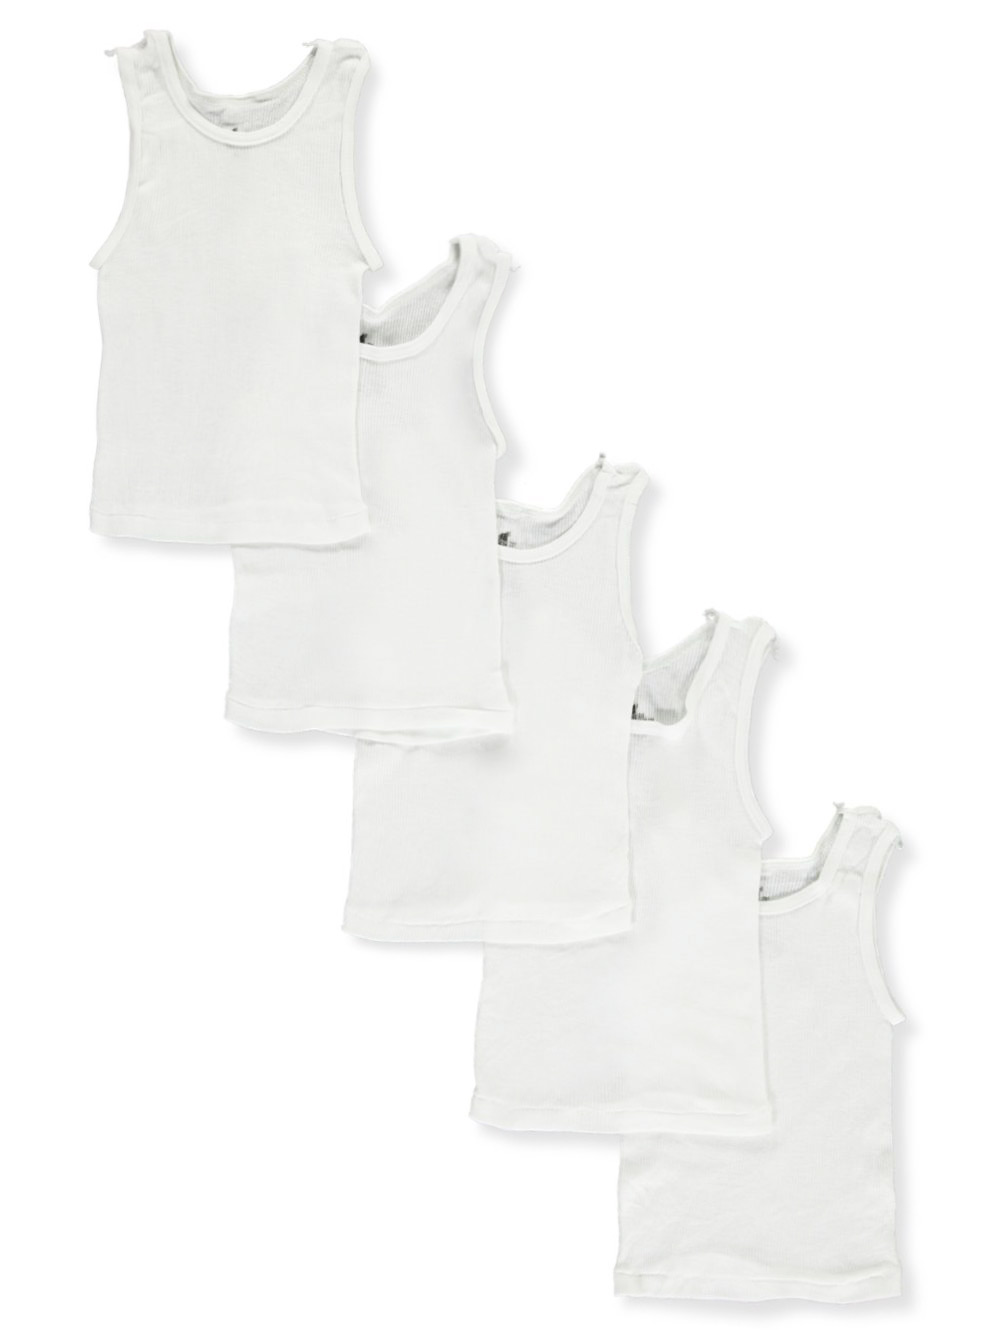 Undershirts Super Soft to the Touch